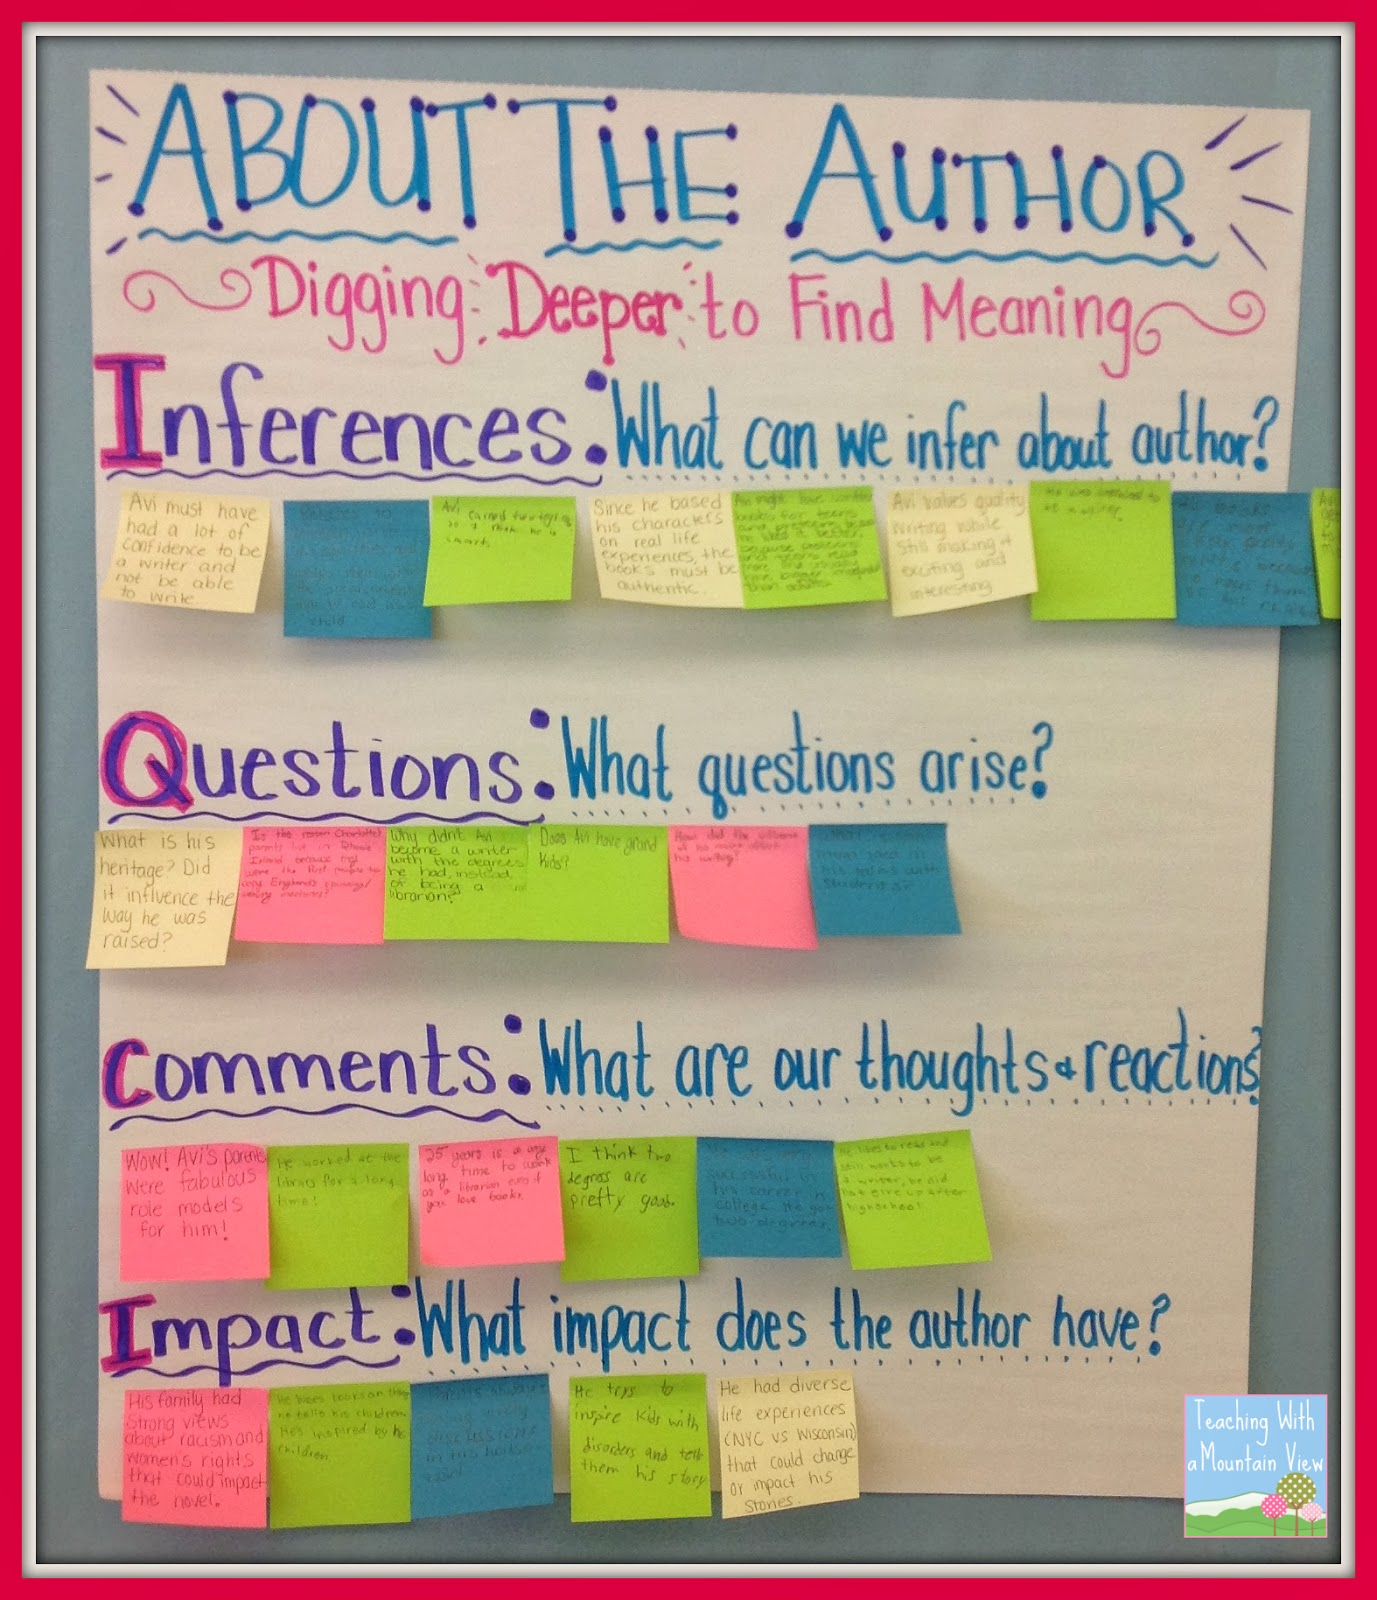 Teaching With A Mountain View Setting The Stage For Novels